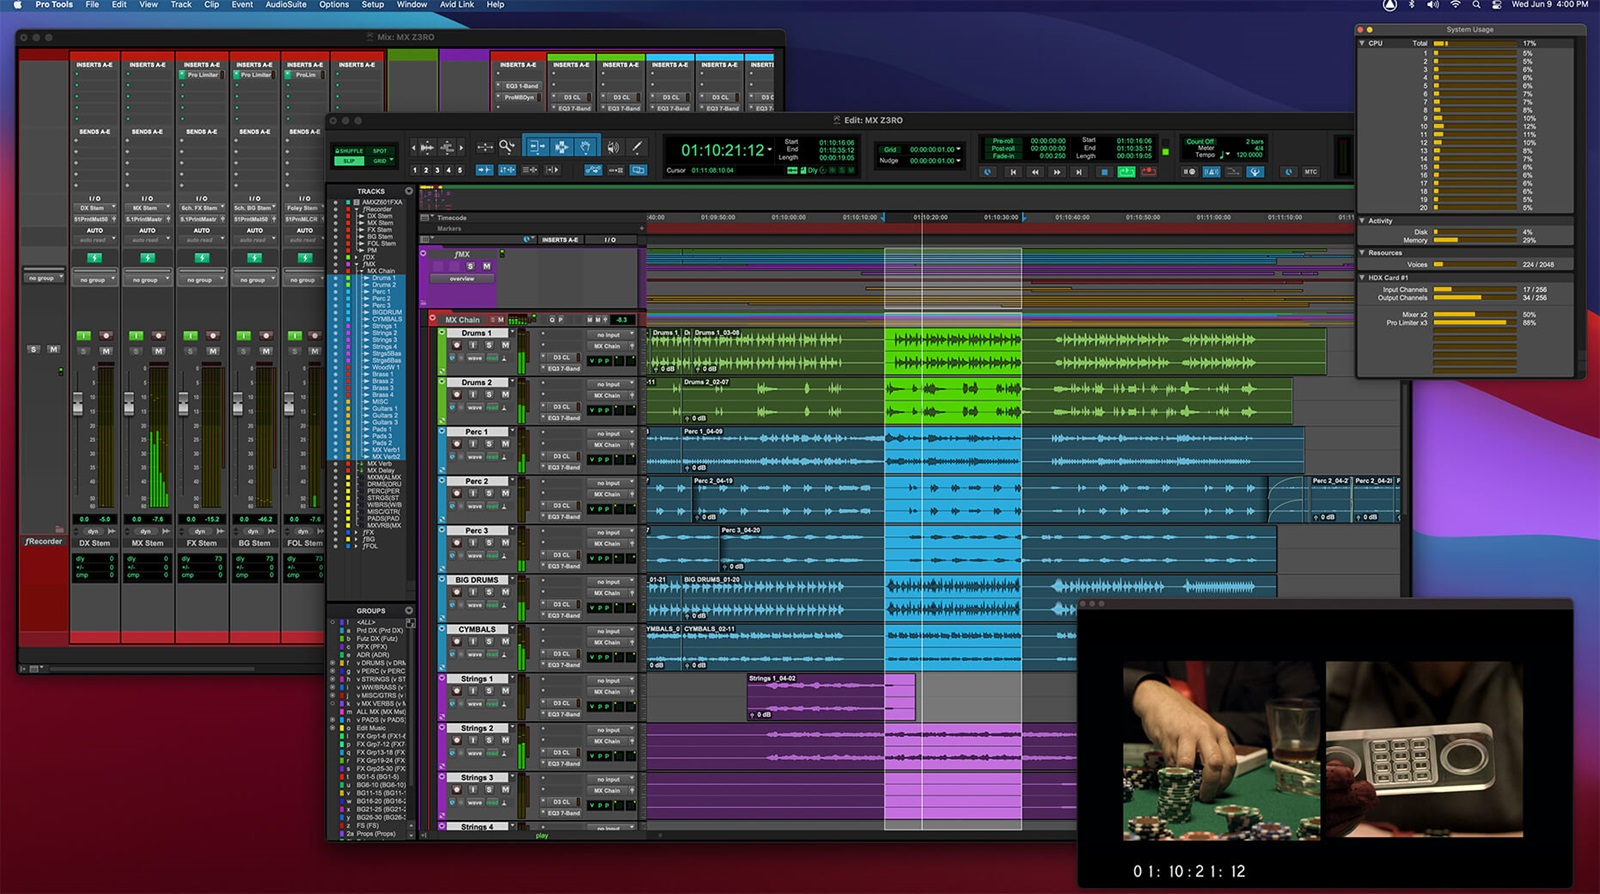 Pro Tools UI showing voices system usage